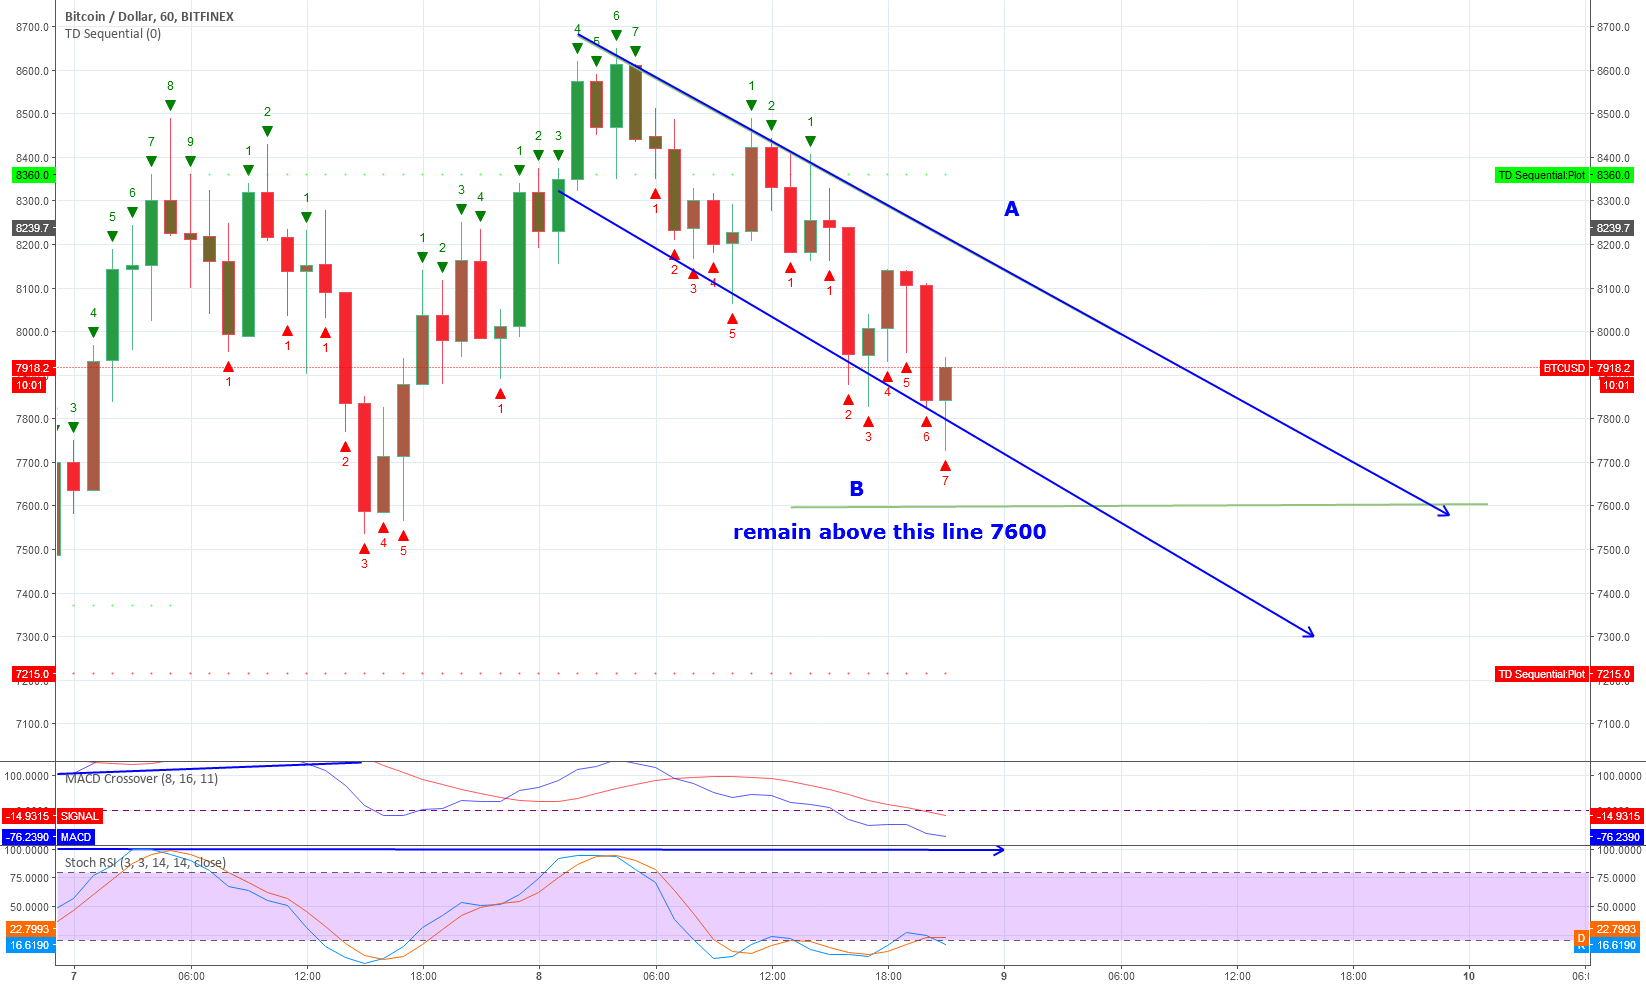 Curent channel BTC is moving in -